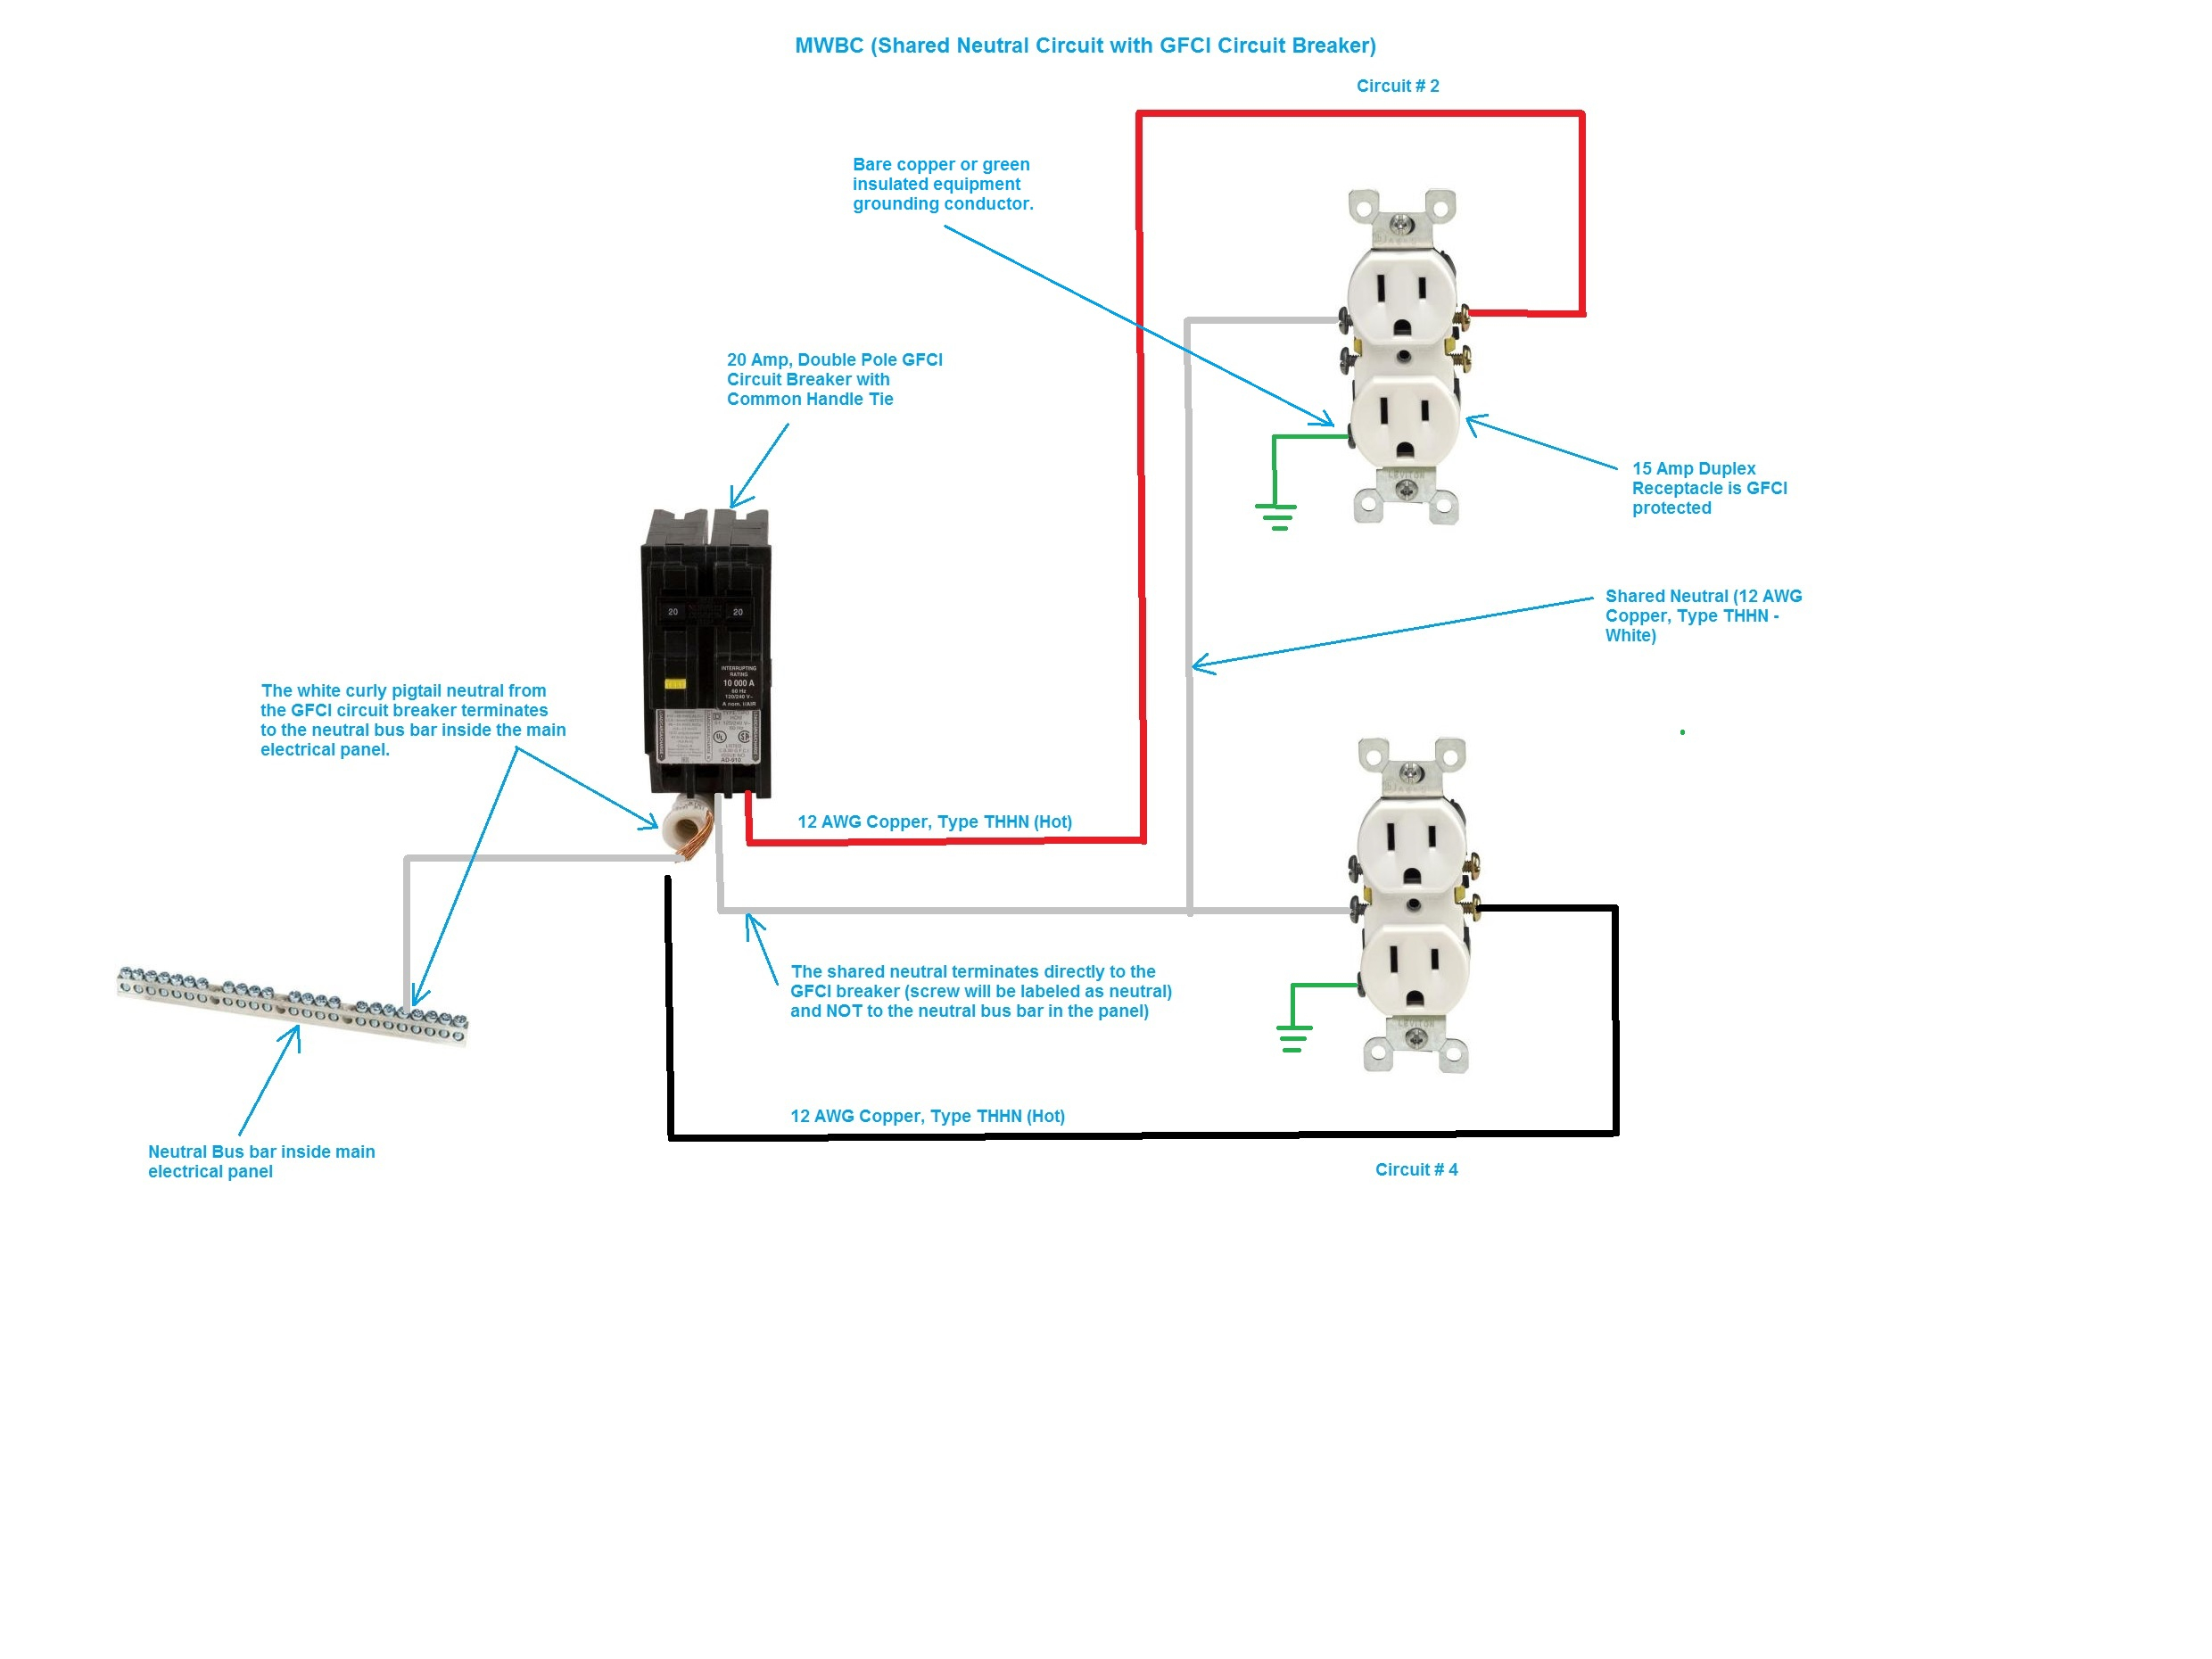 Pool Gfci Breaker Wiring Diagram | Manual E-Books - Pool Light Wiring Diagram